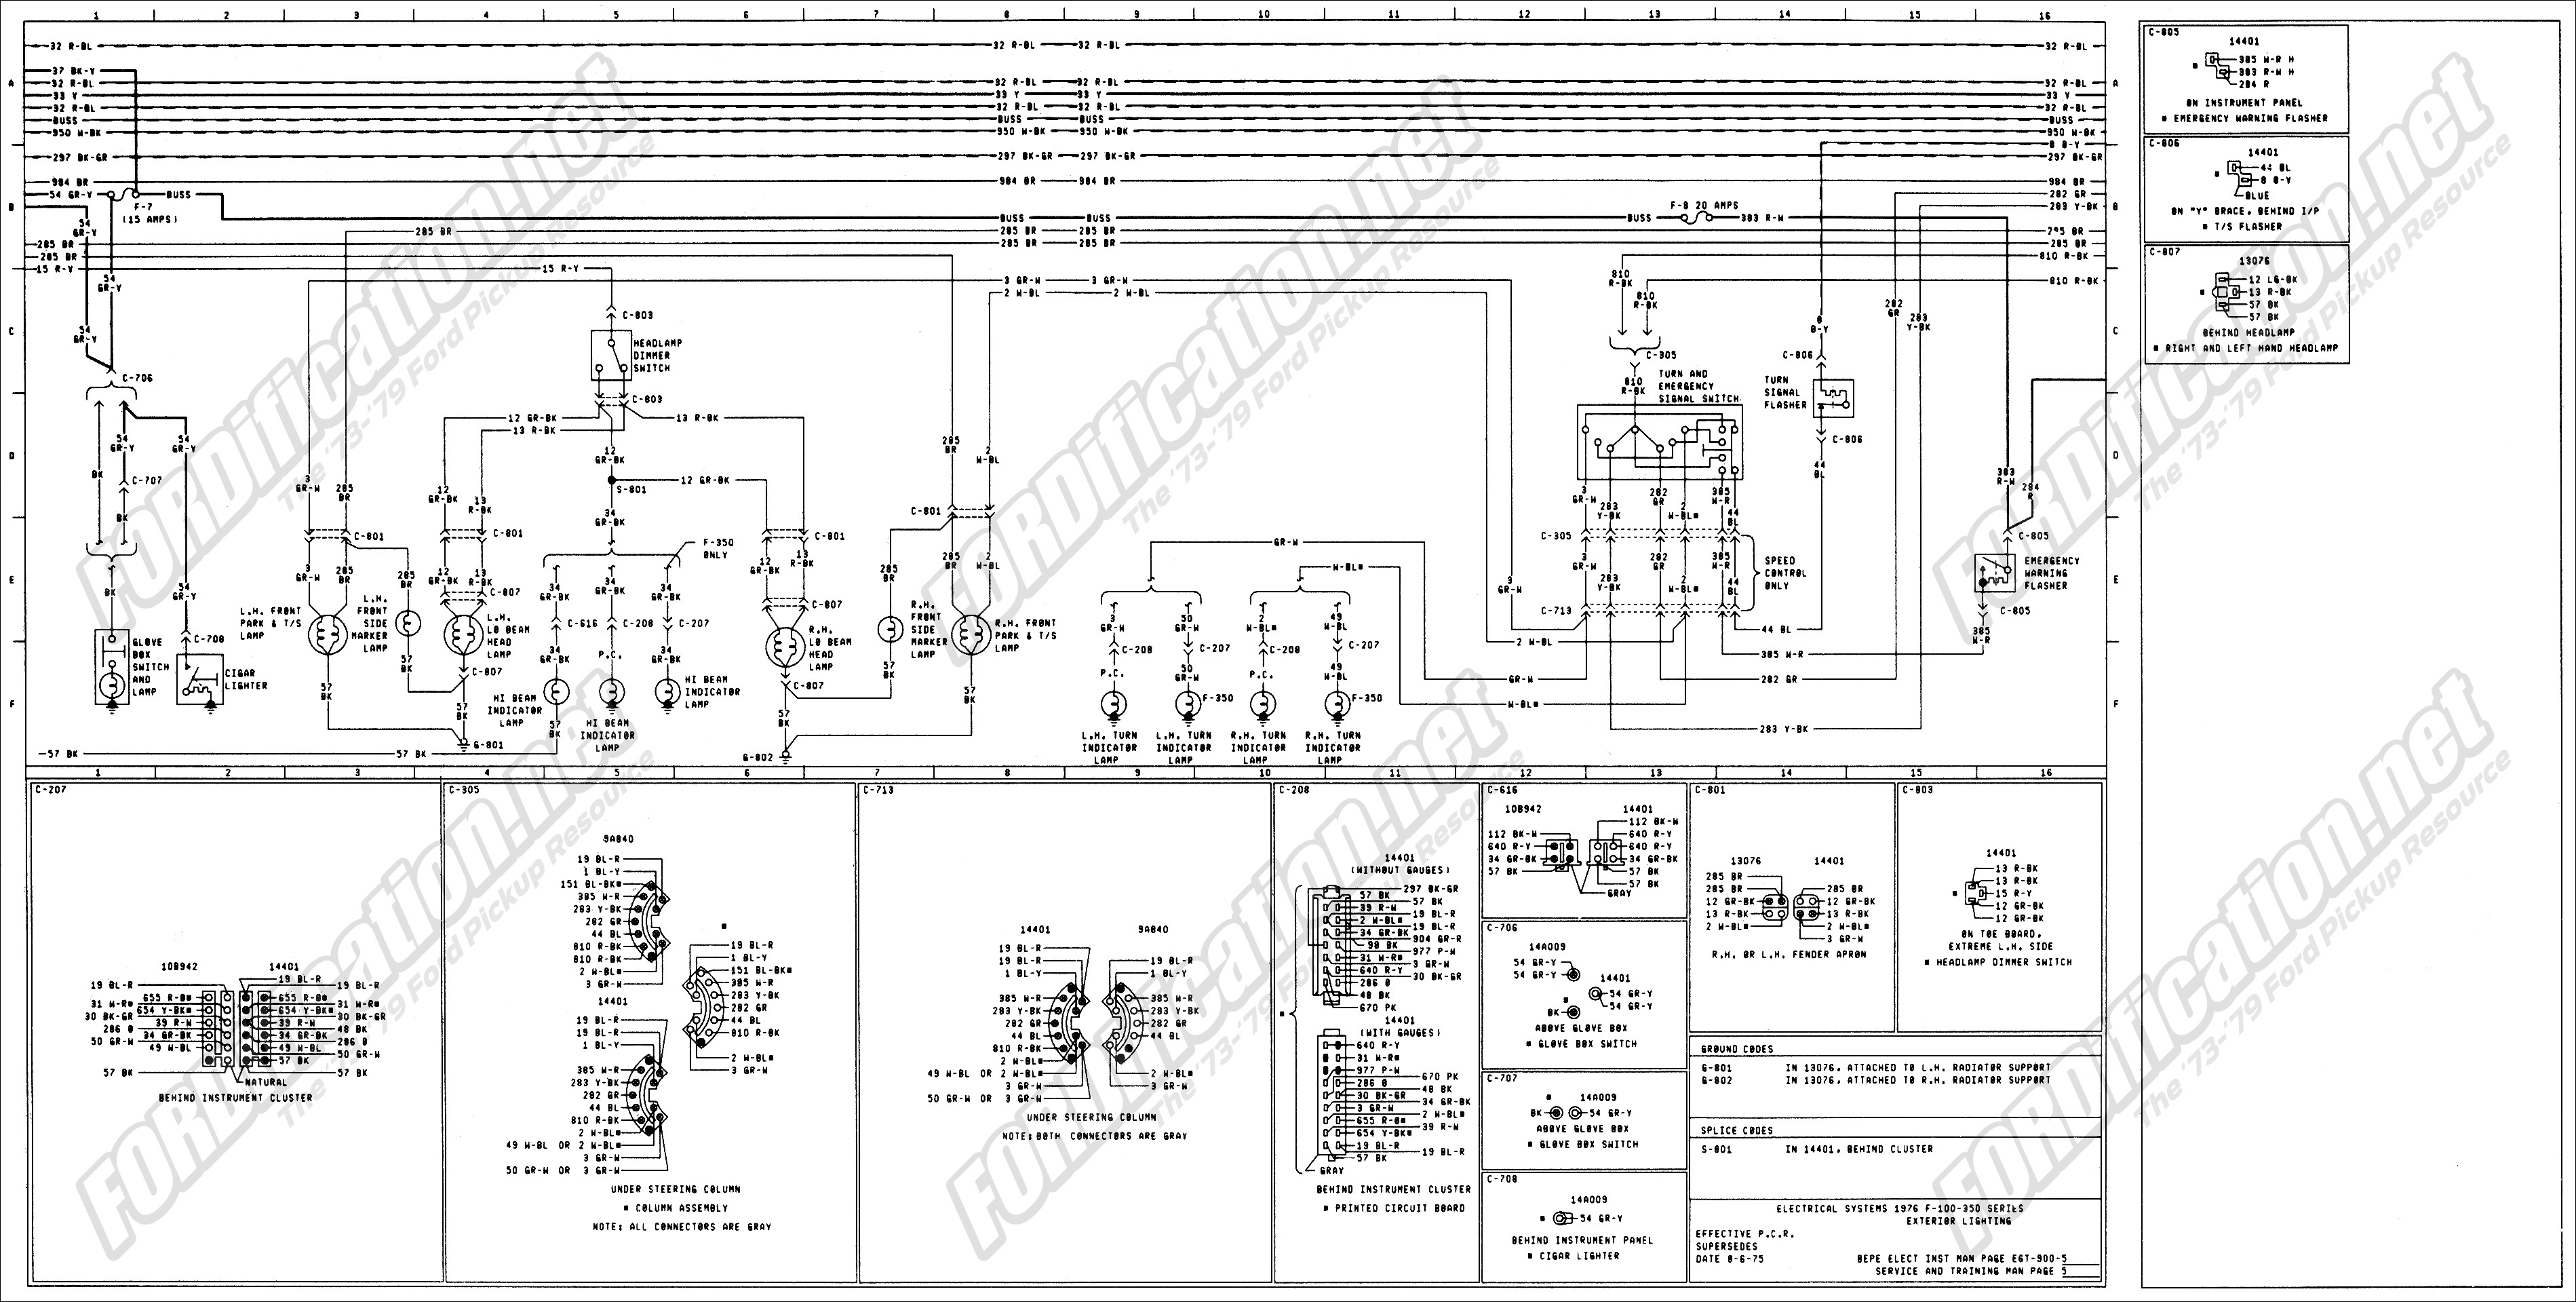 1978 Cj5 Wiring Diagram | Wiring Diagram  Cj Wiring Diagram Blinker Switch on 1976 cj5 wiring diagram, 1986 jeep wiring diagram, 1966 cj5 wiring diagram, 1980 cj5 wiring diagram, 1969 cj5 wiring diagram, 1996 bonneville wiring diagram, 1974 cj5 wiring diagram, 1978 cj5 parts, 1978 cj5 engine, jeep cj5 dash wiring diagram, 1978 cj5 fuse box, 1977 cj5 wiring diagram, 1978 cj5 door, 1999 cherokee wiring diagram, 1973 cj5 wiring diagram, 1994 jeep yj wiring diagram, 1978 cj5 headlight switch, 1978 cj5 frame, 2005 honda trx 400ex wiring diagram, 1975 cj5 wiring diagram,